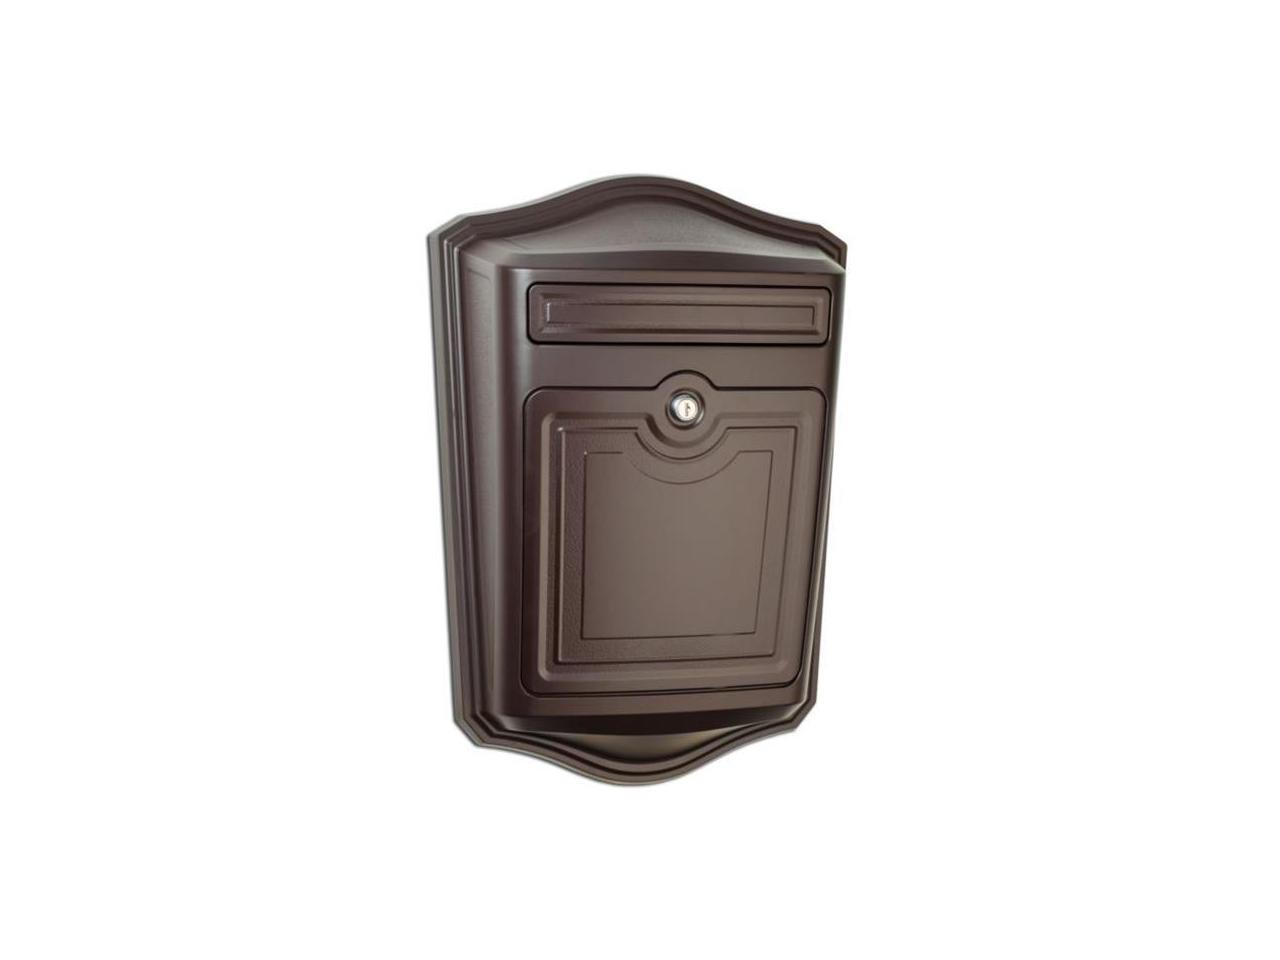 Picture of: Architectural Mailboxes 2540rz 10 Mailson Lockable Wall Mount Mailbox Oil Rubbed Bronze Newegg Com